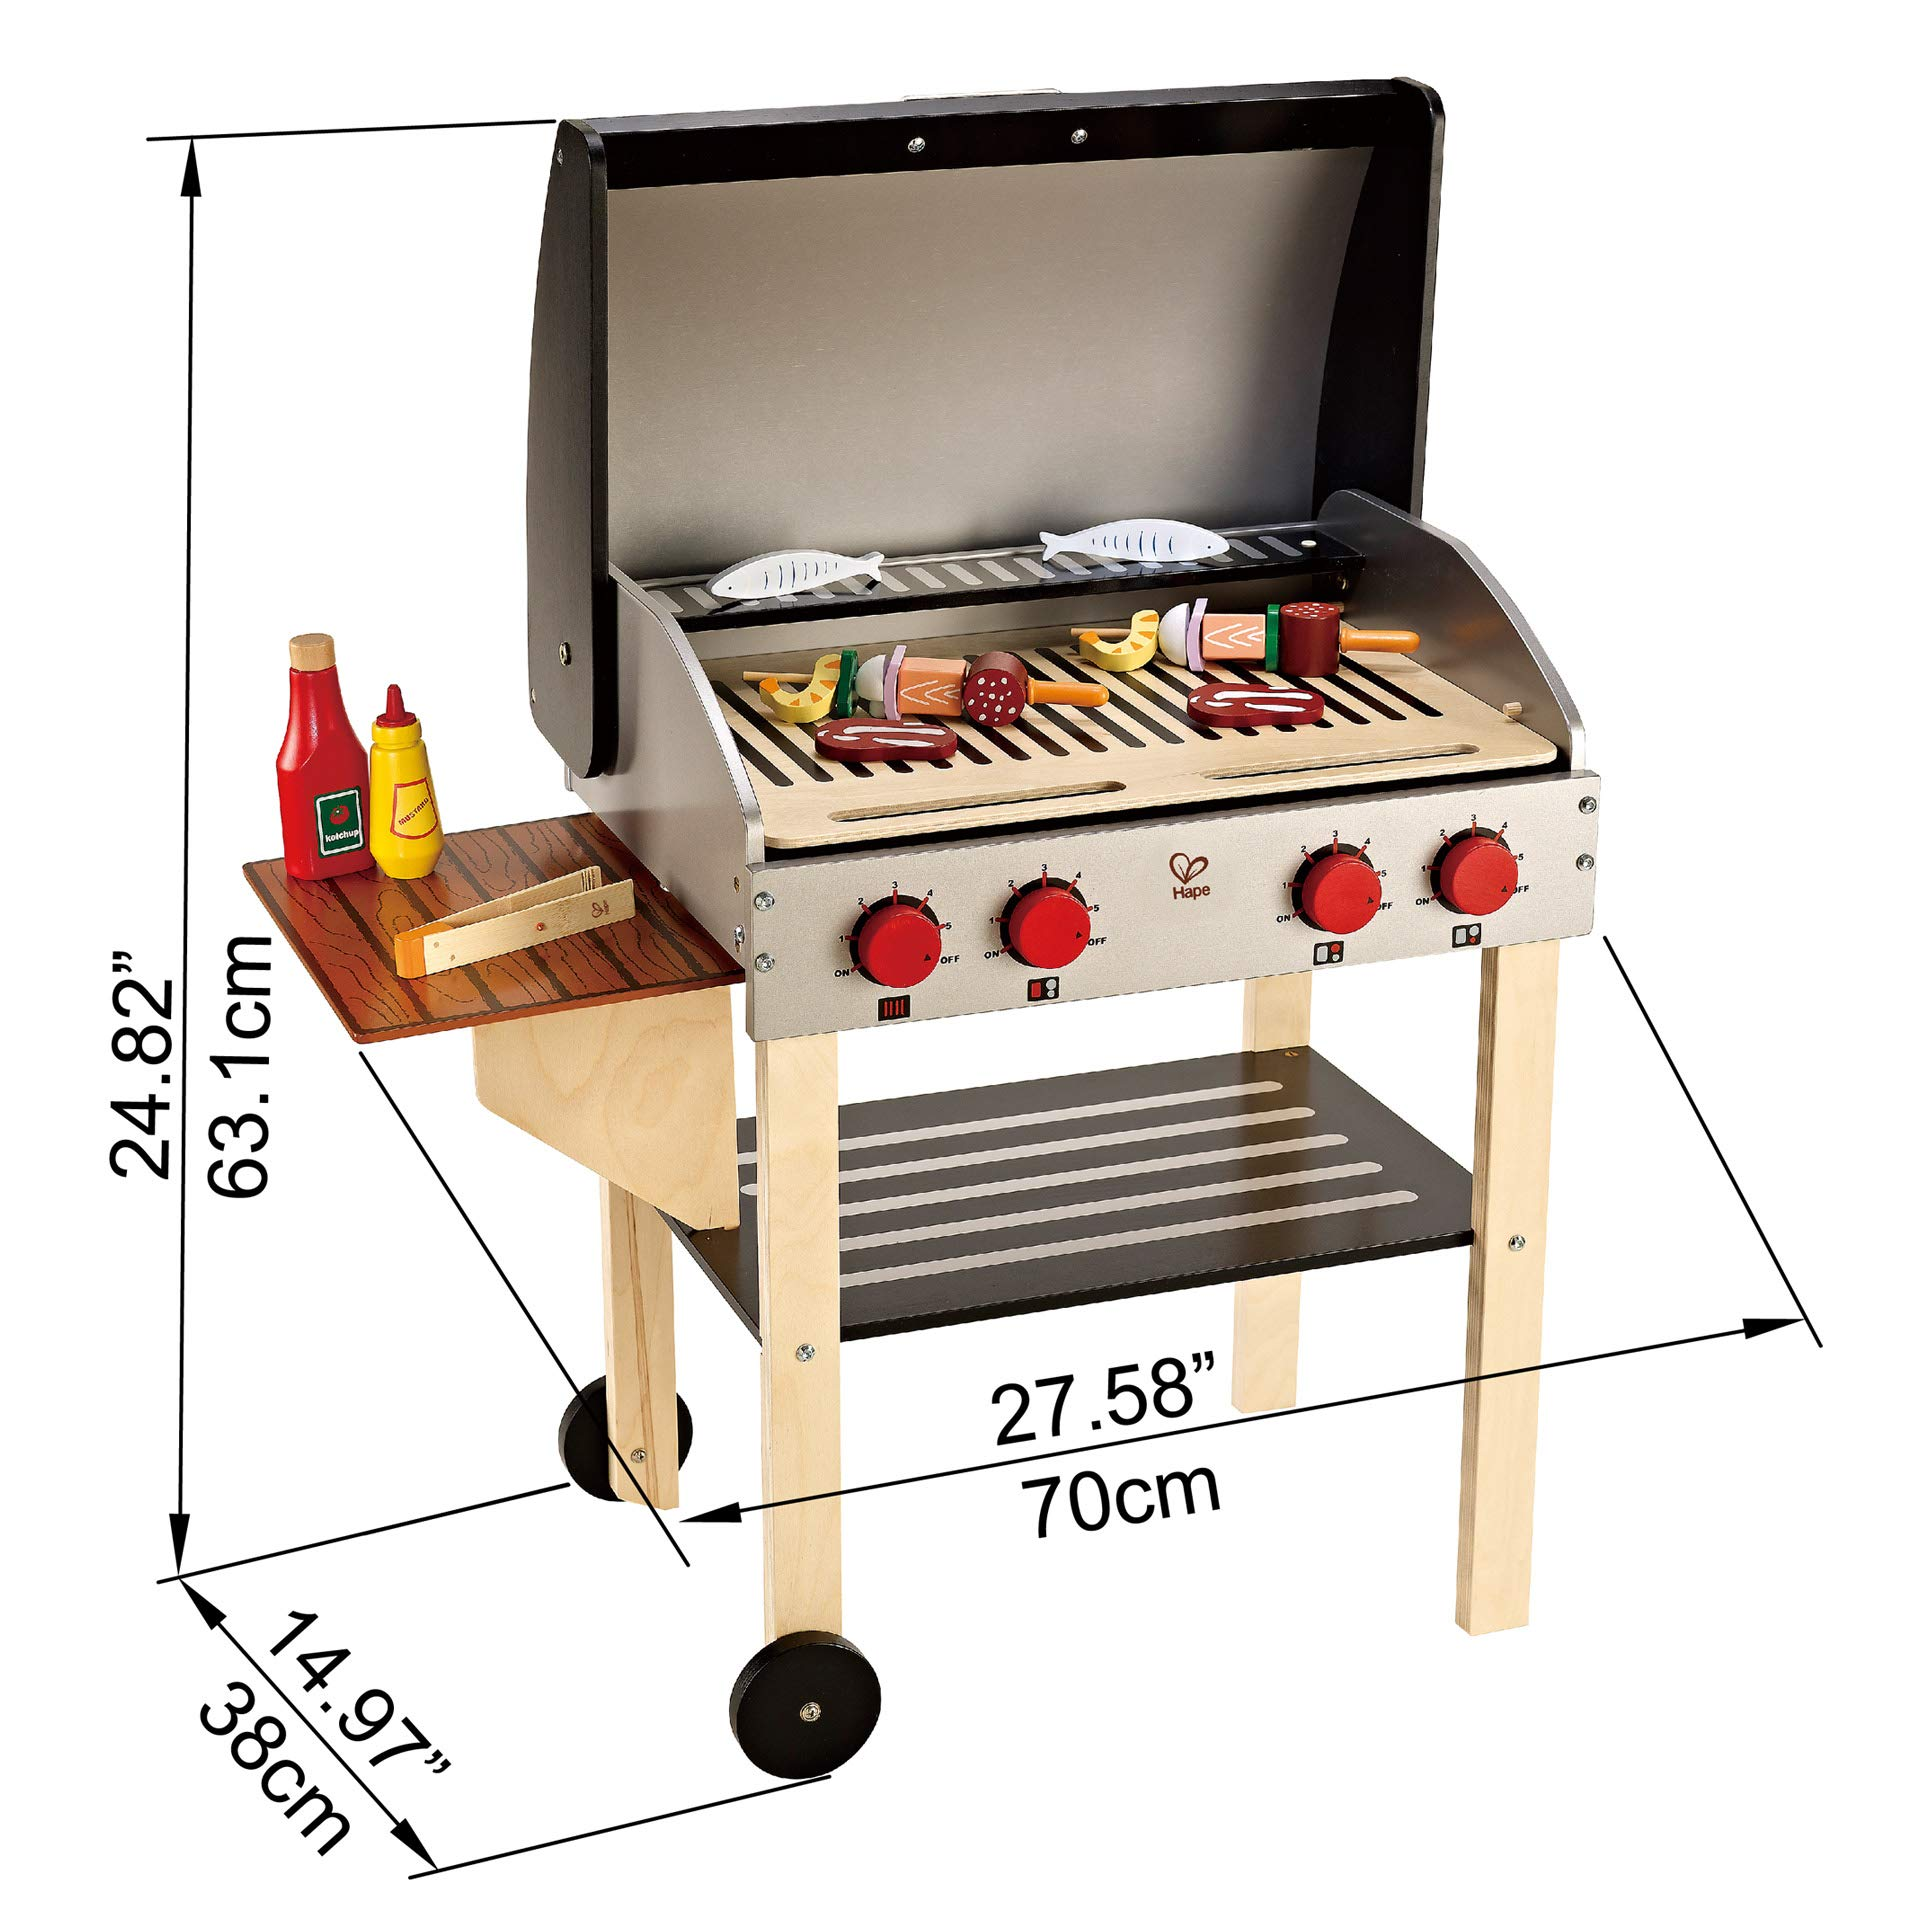 Includes Pretend Play Wooden Barbeque Food and Cook N Grill Wood Toy BBQ Set